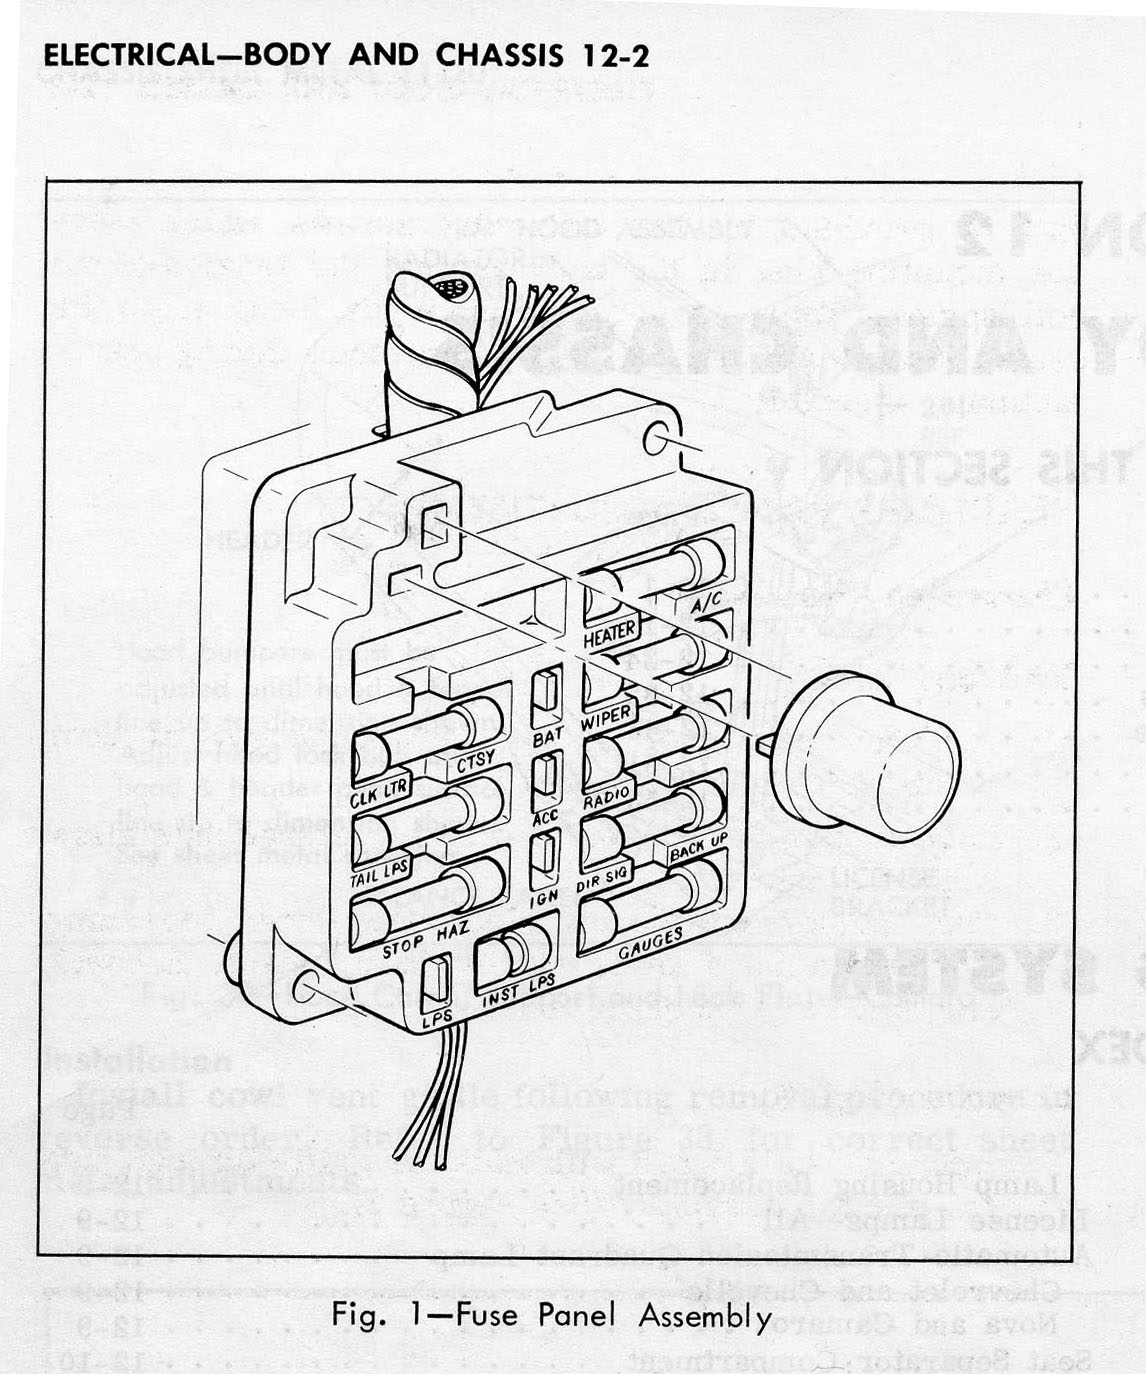 Wiring Diagram On Motor Starter Wiring Diagram For 1977 Corvette